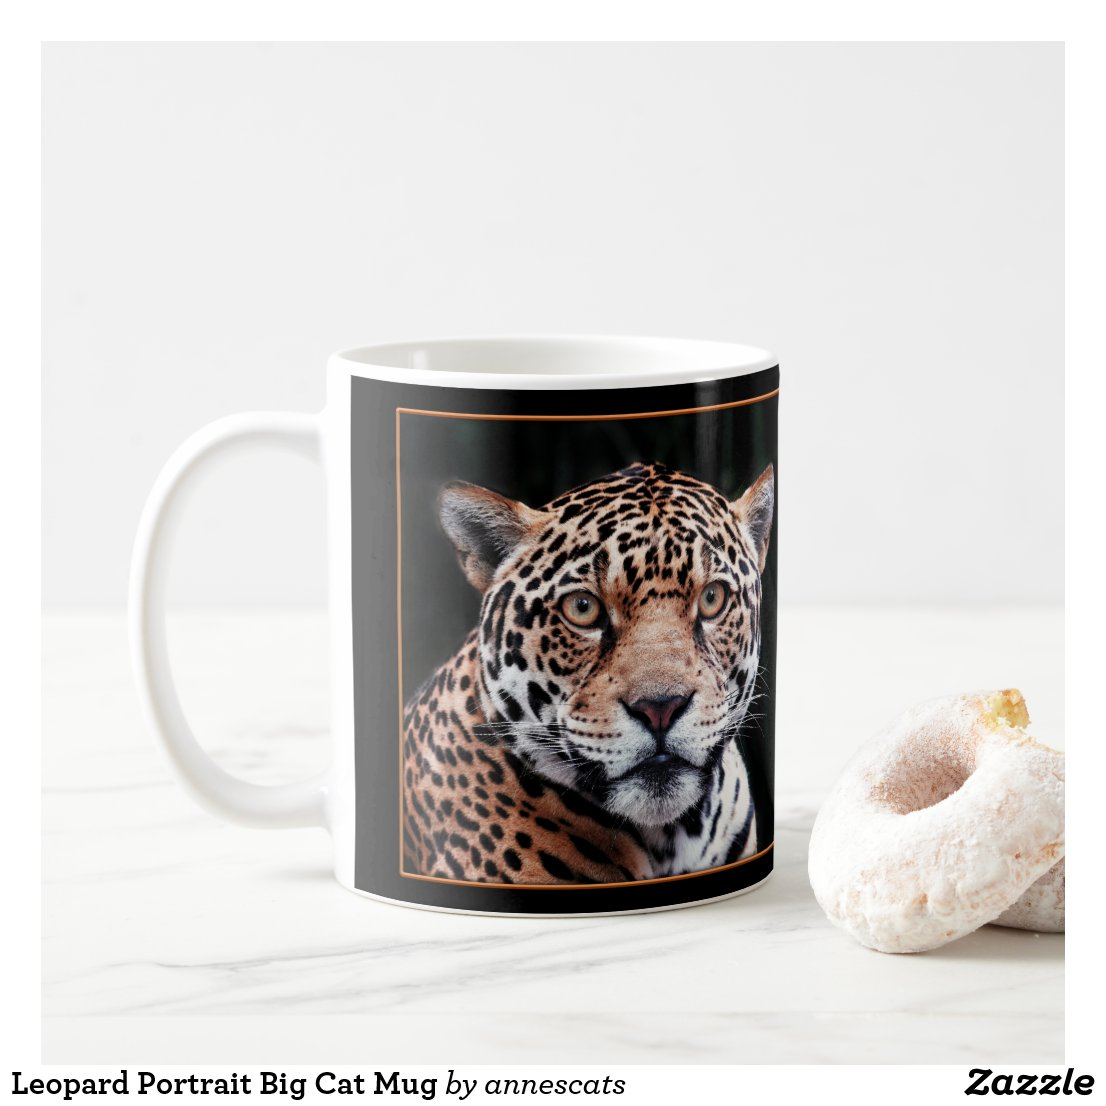 Leopard Portrait Big Cat Mug